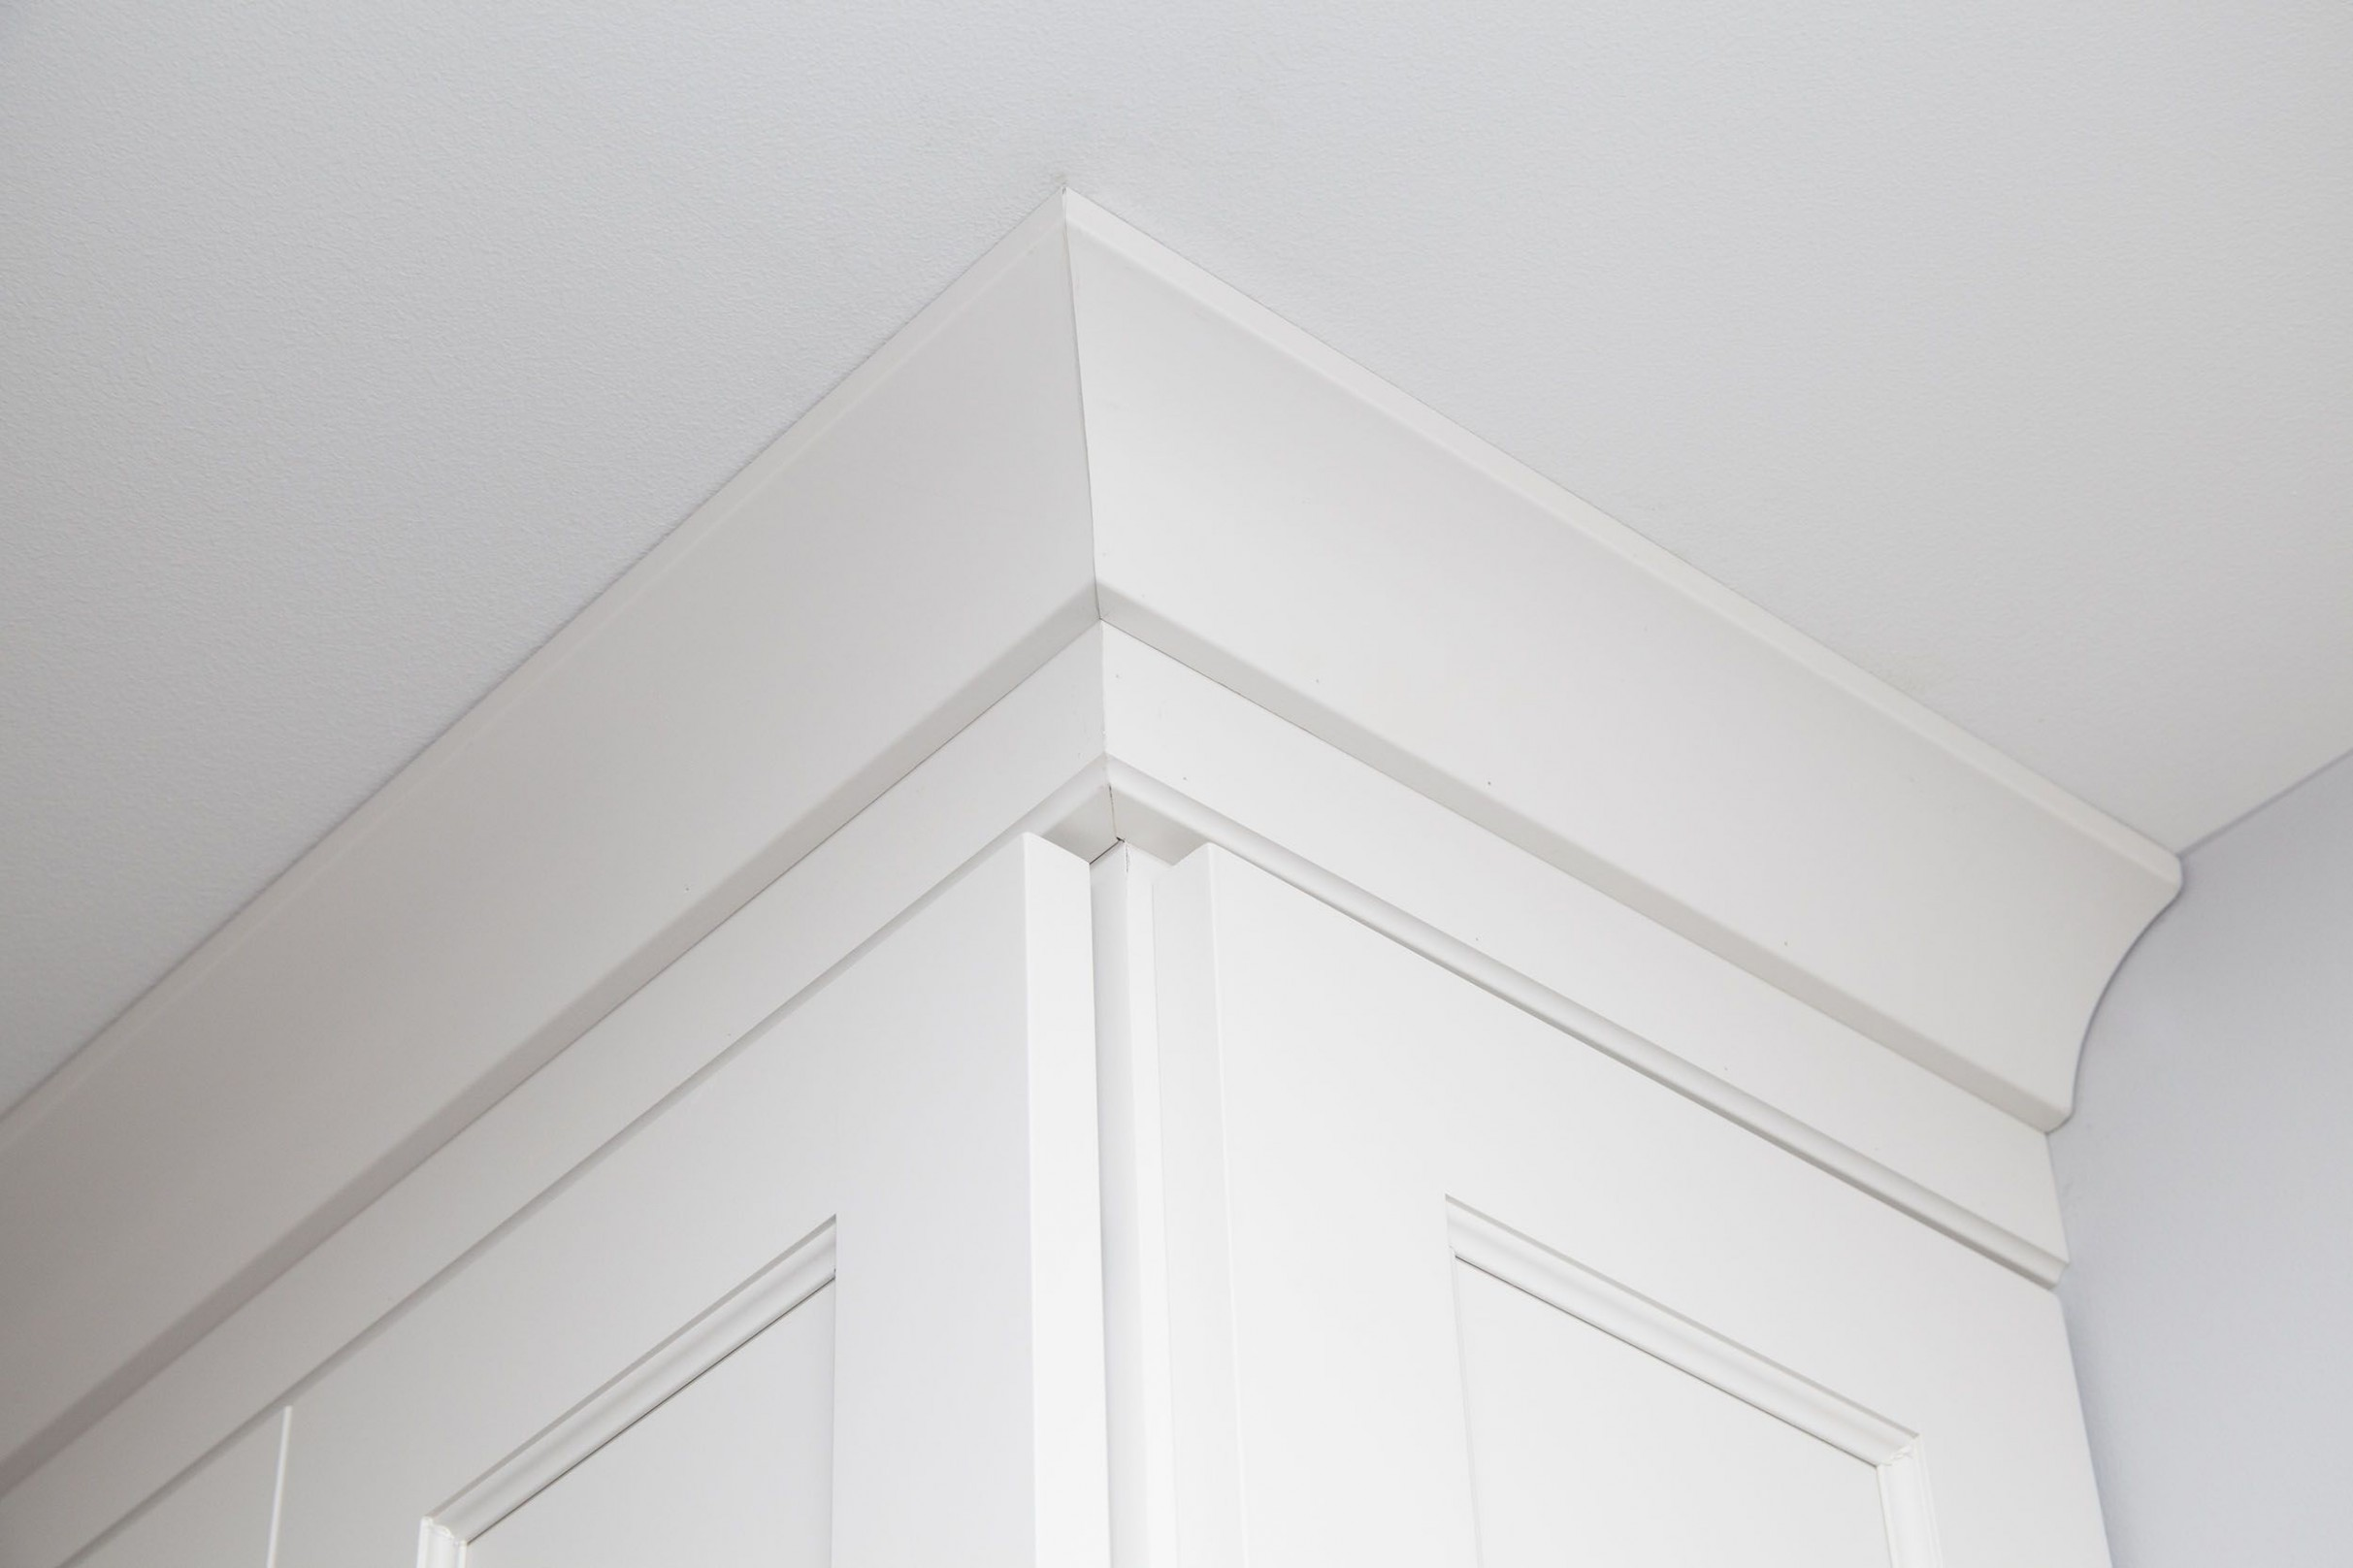 This is a crown molding detail